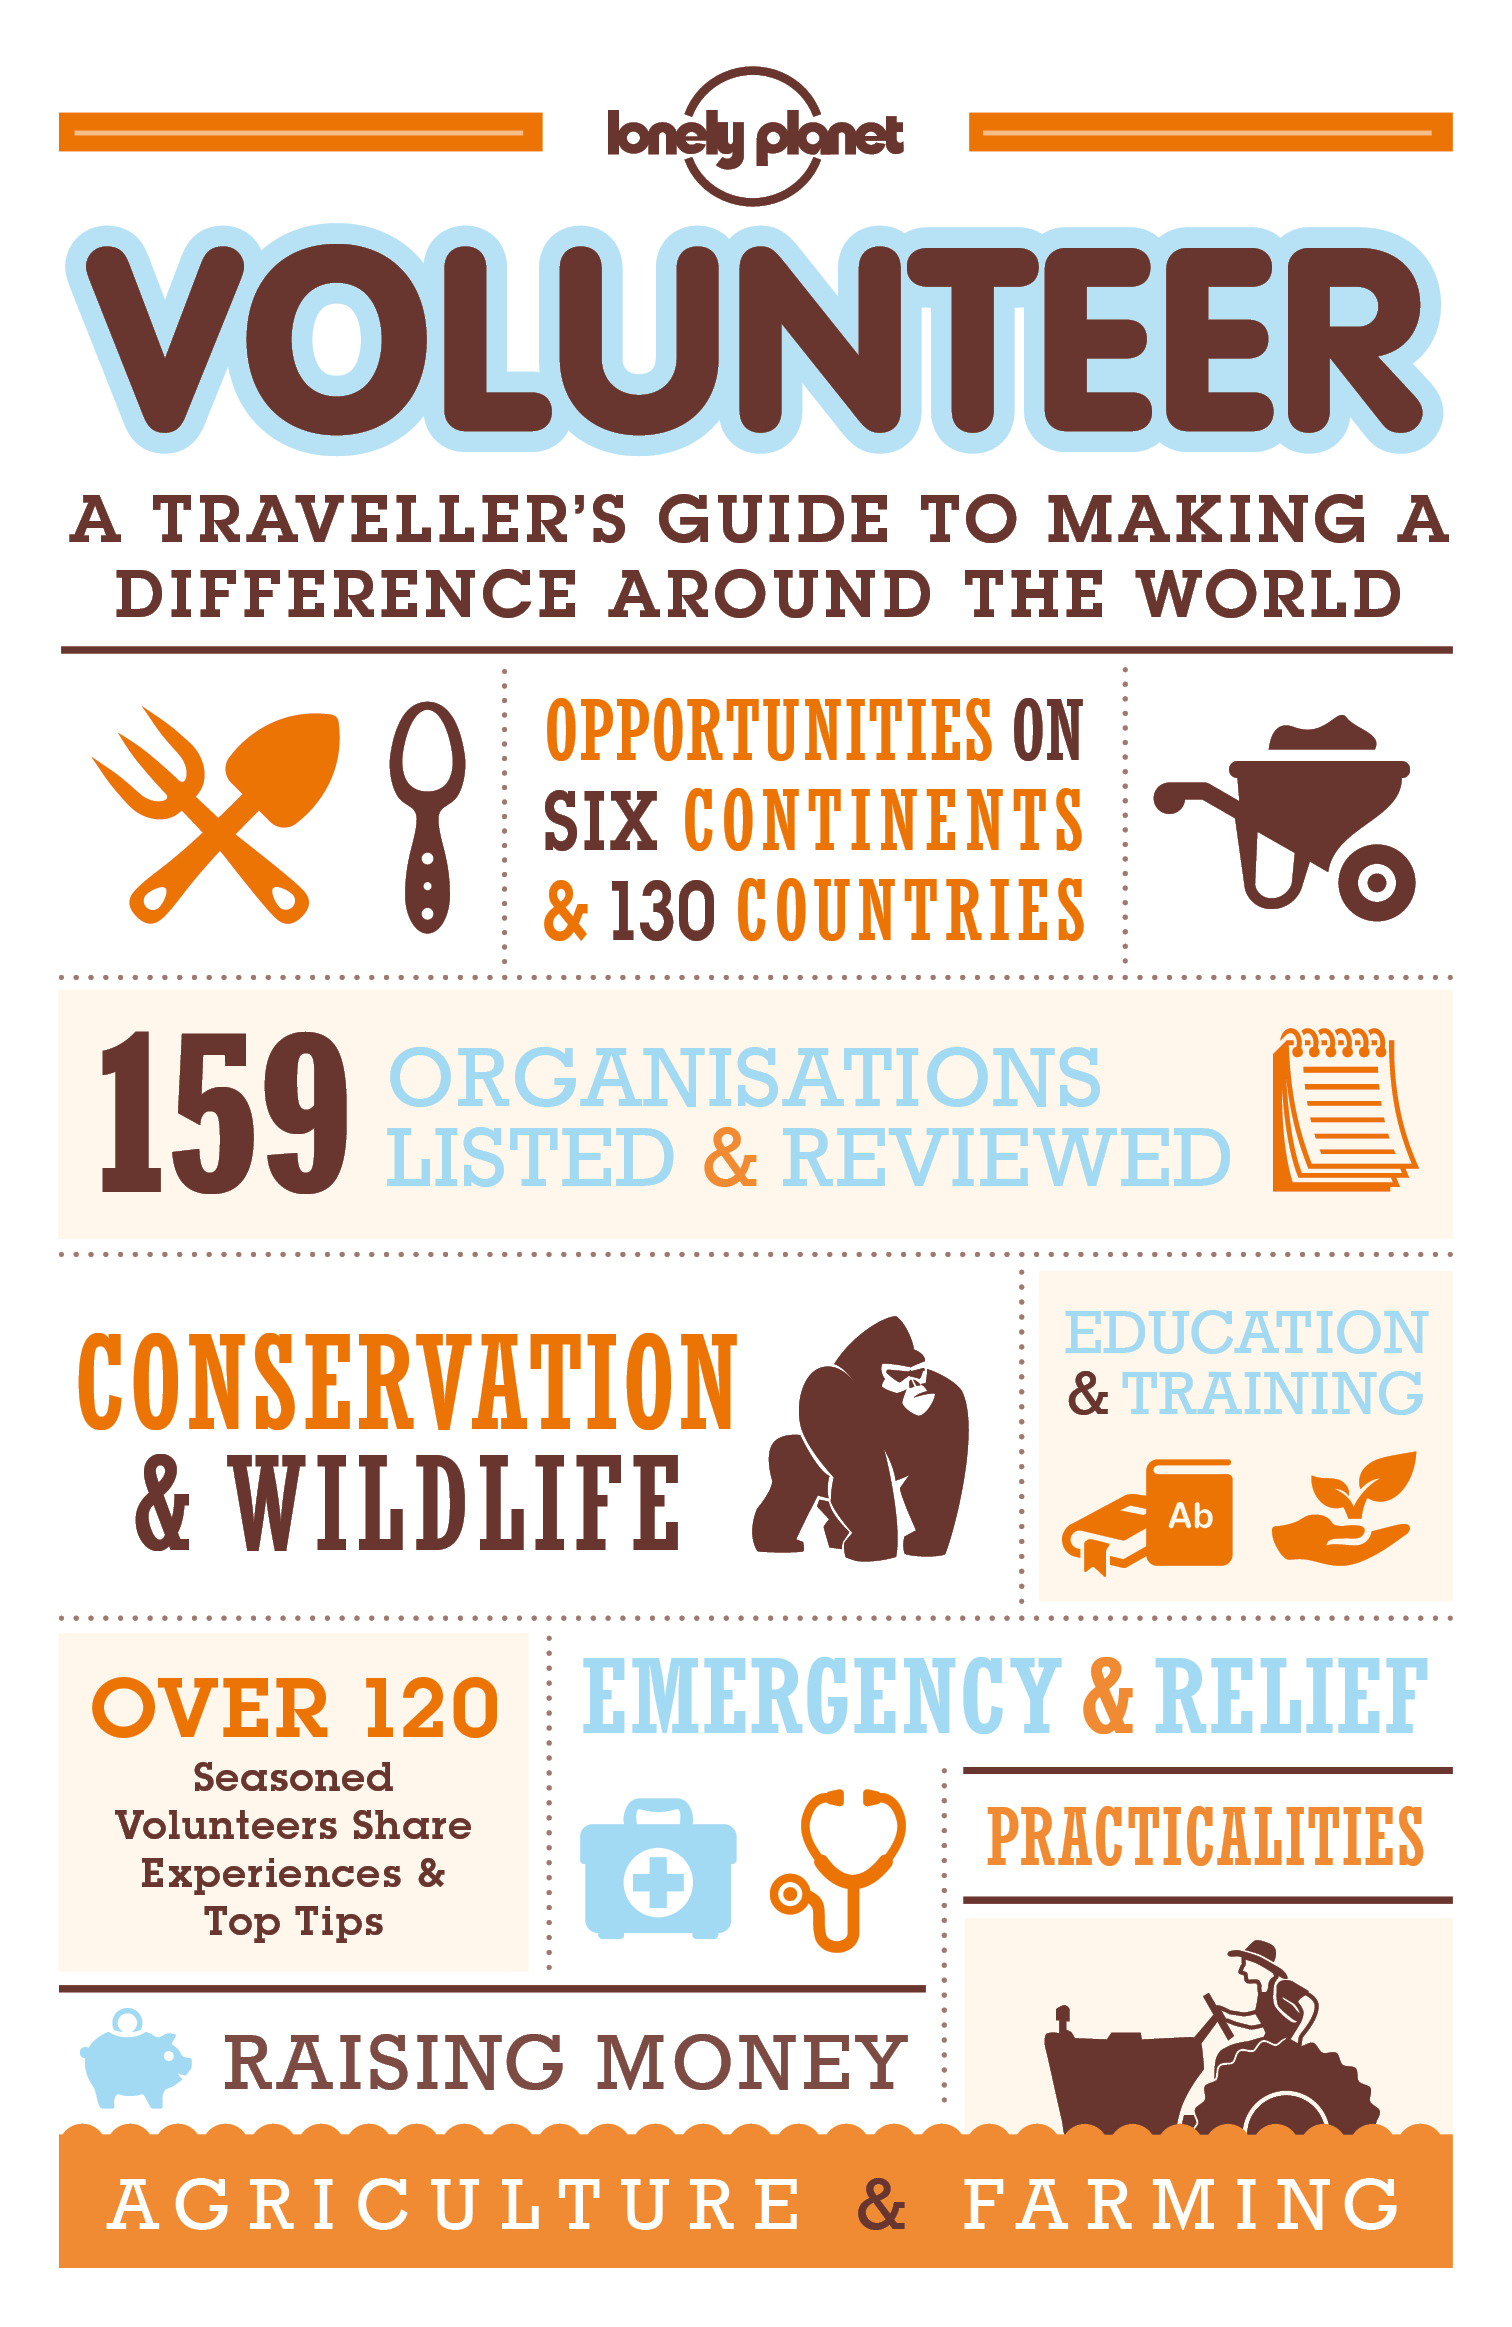 Volunteer A Traveller's Guide to Making a Difference Around the World